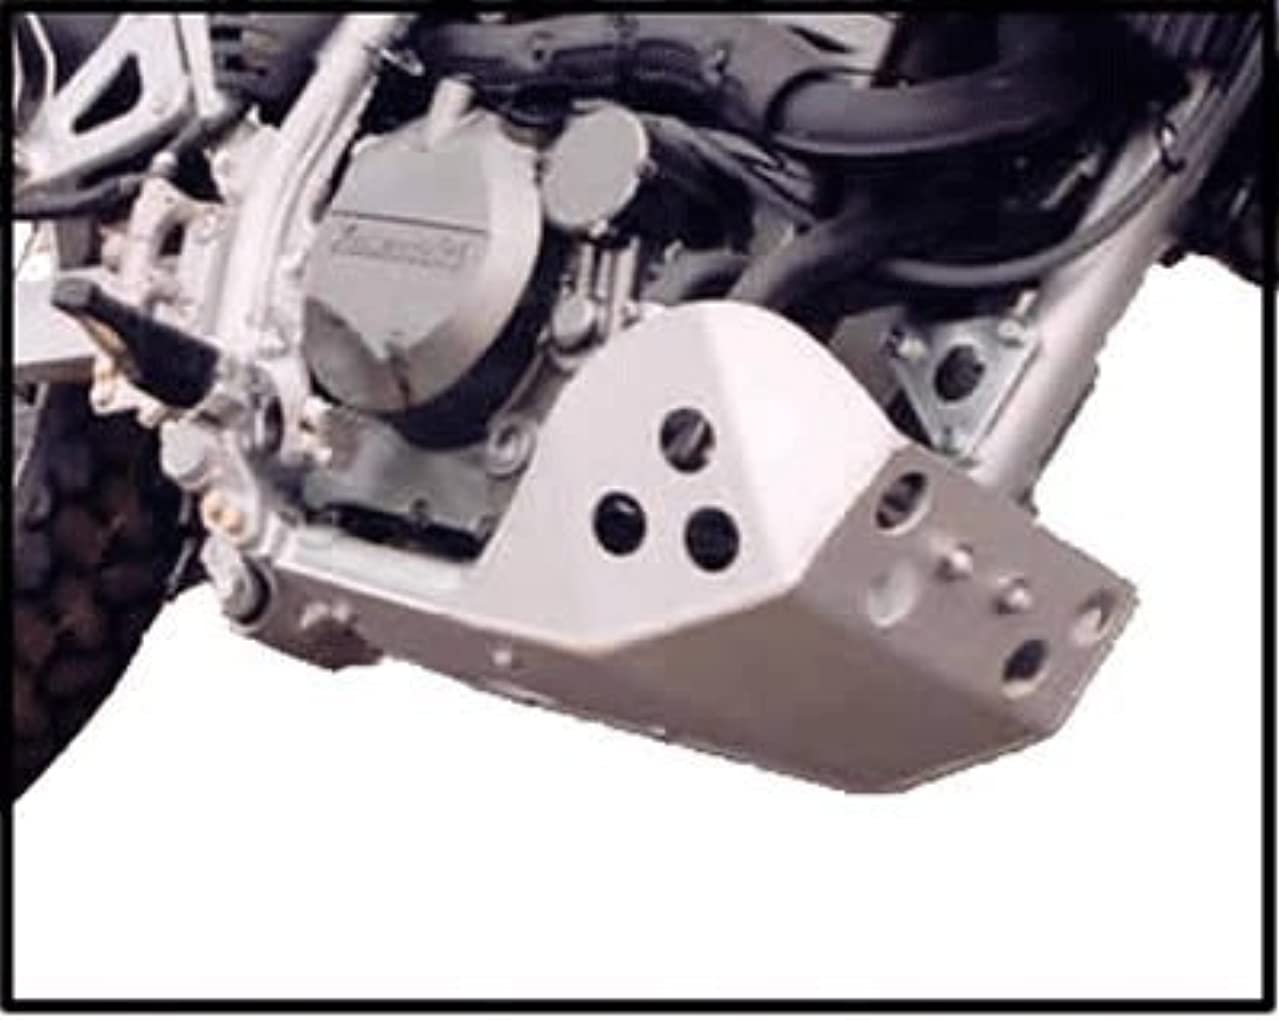 Kawasaki KLR 650 SW Motech Crash Bar Compatible Version Full Protection Skid Plate Constructed with 3/16